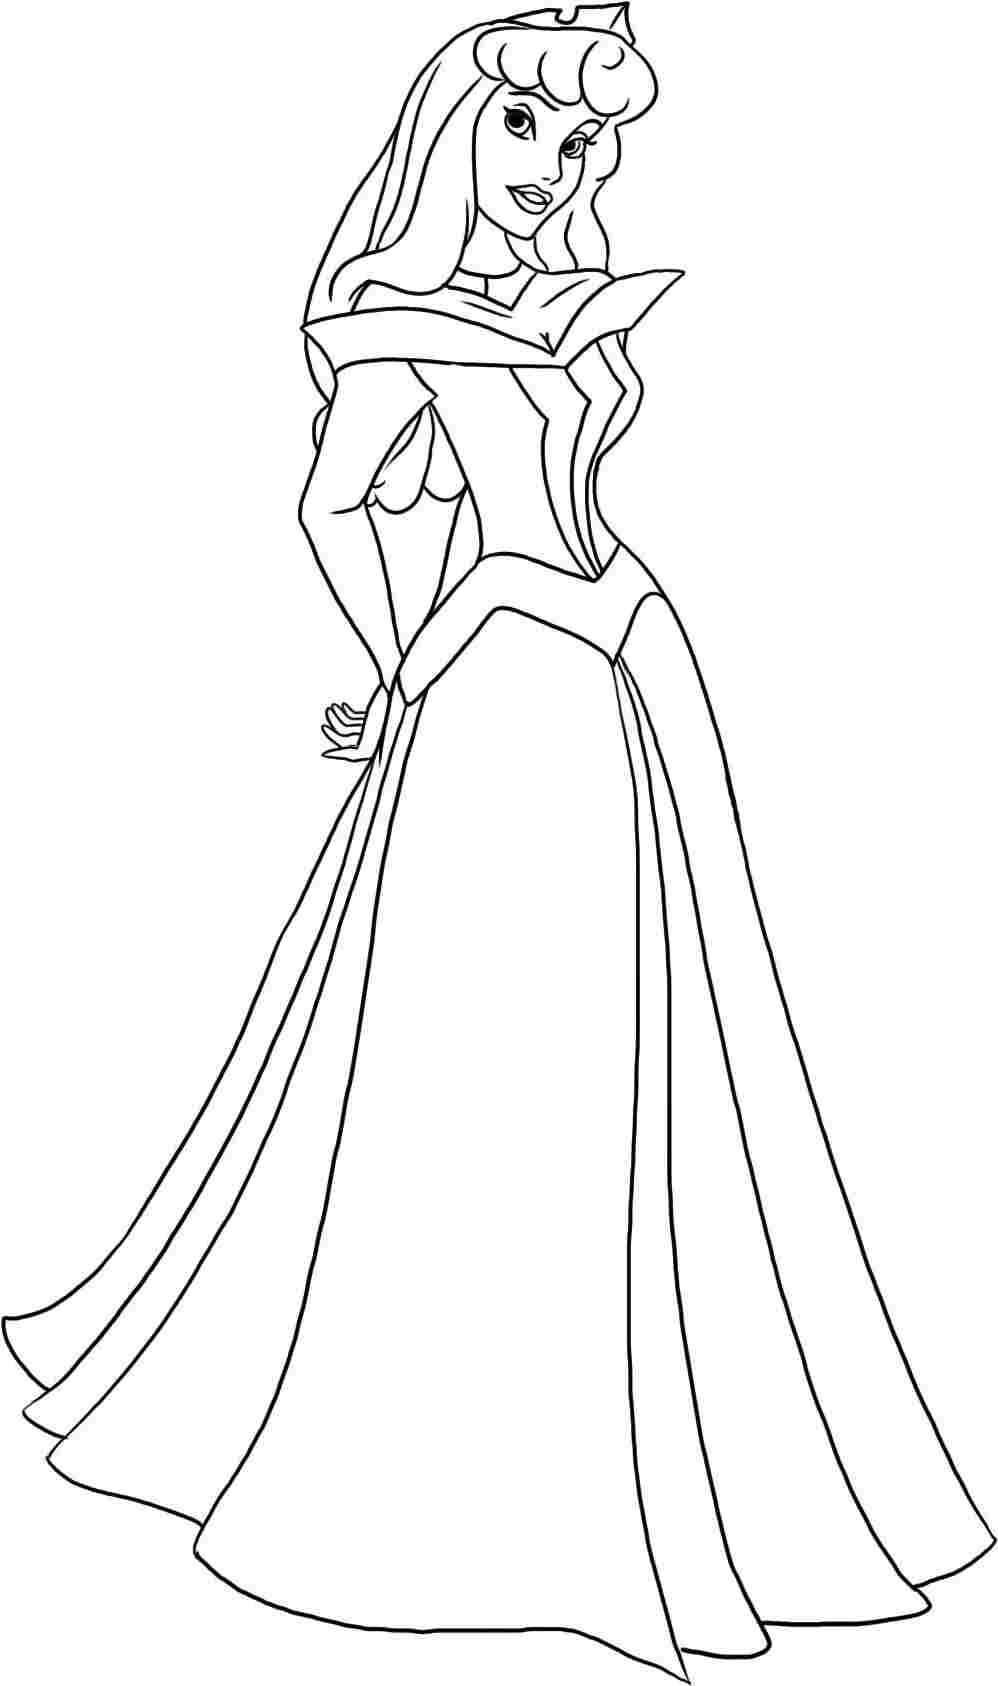 Printable Coloring Pages Of Aurora - Coloring Home